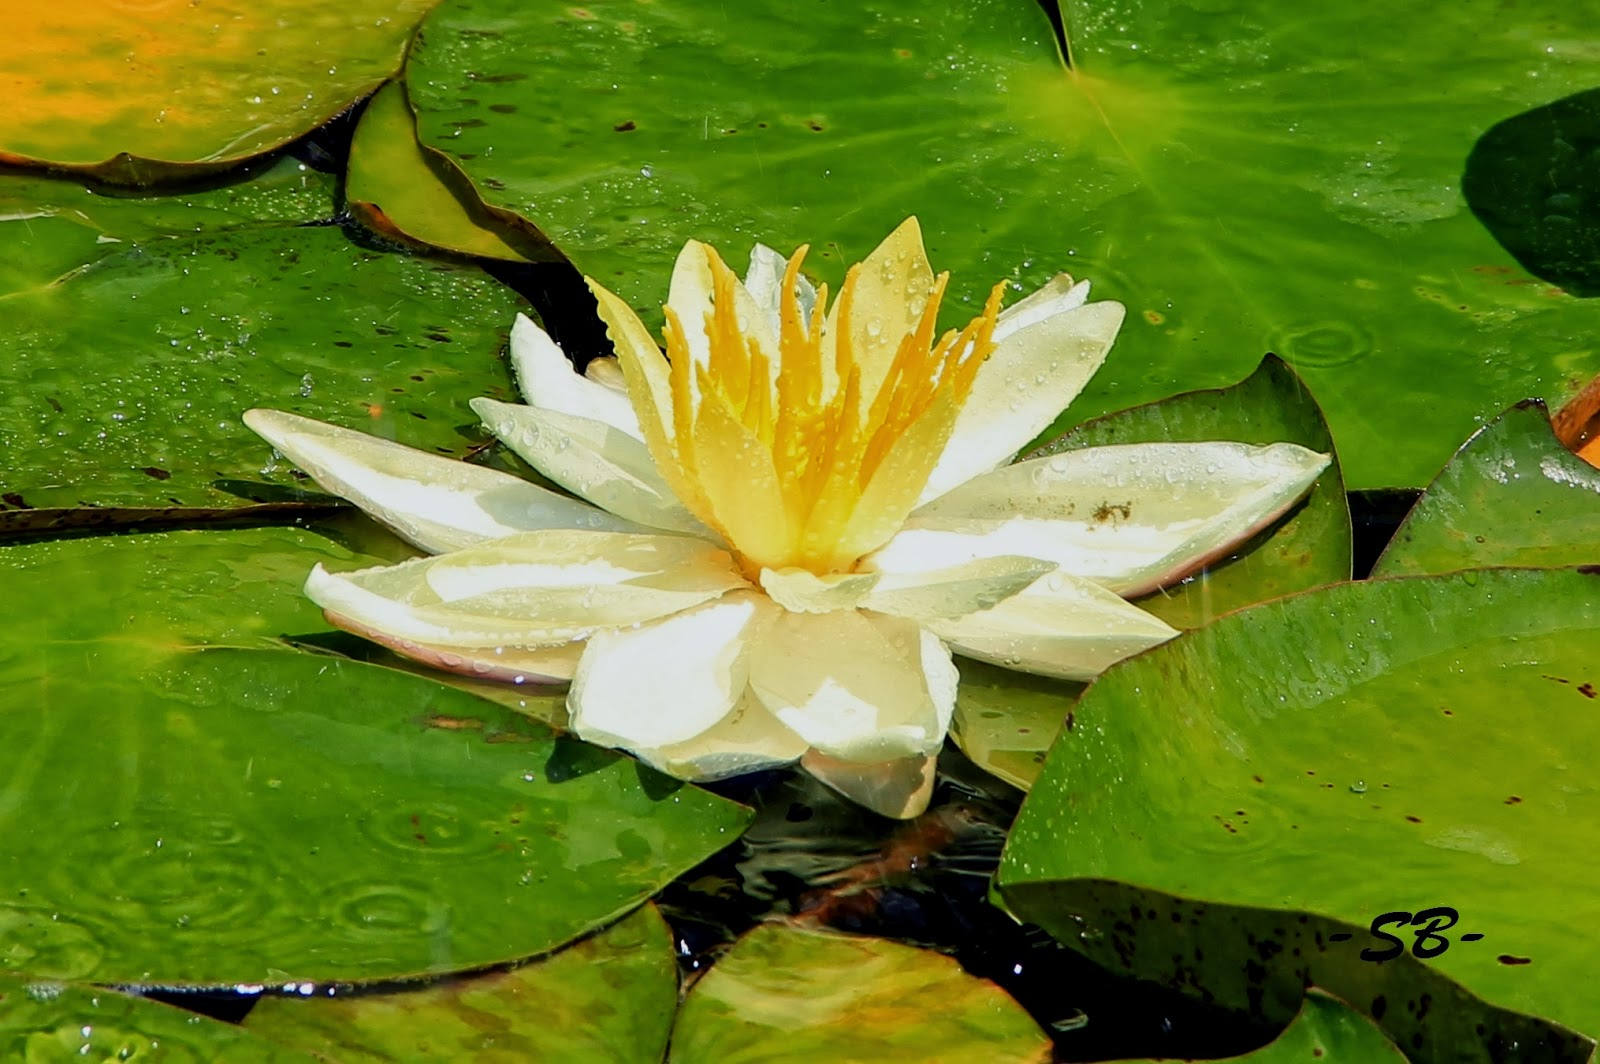 Beauty flower lotus flowers the lotus flower is a very popular tattoo it is a symbol of awakening to the spiritual reality of life in hinduism and buddhism though the meaning varies izmirmasajfo